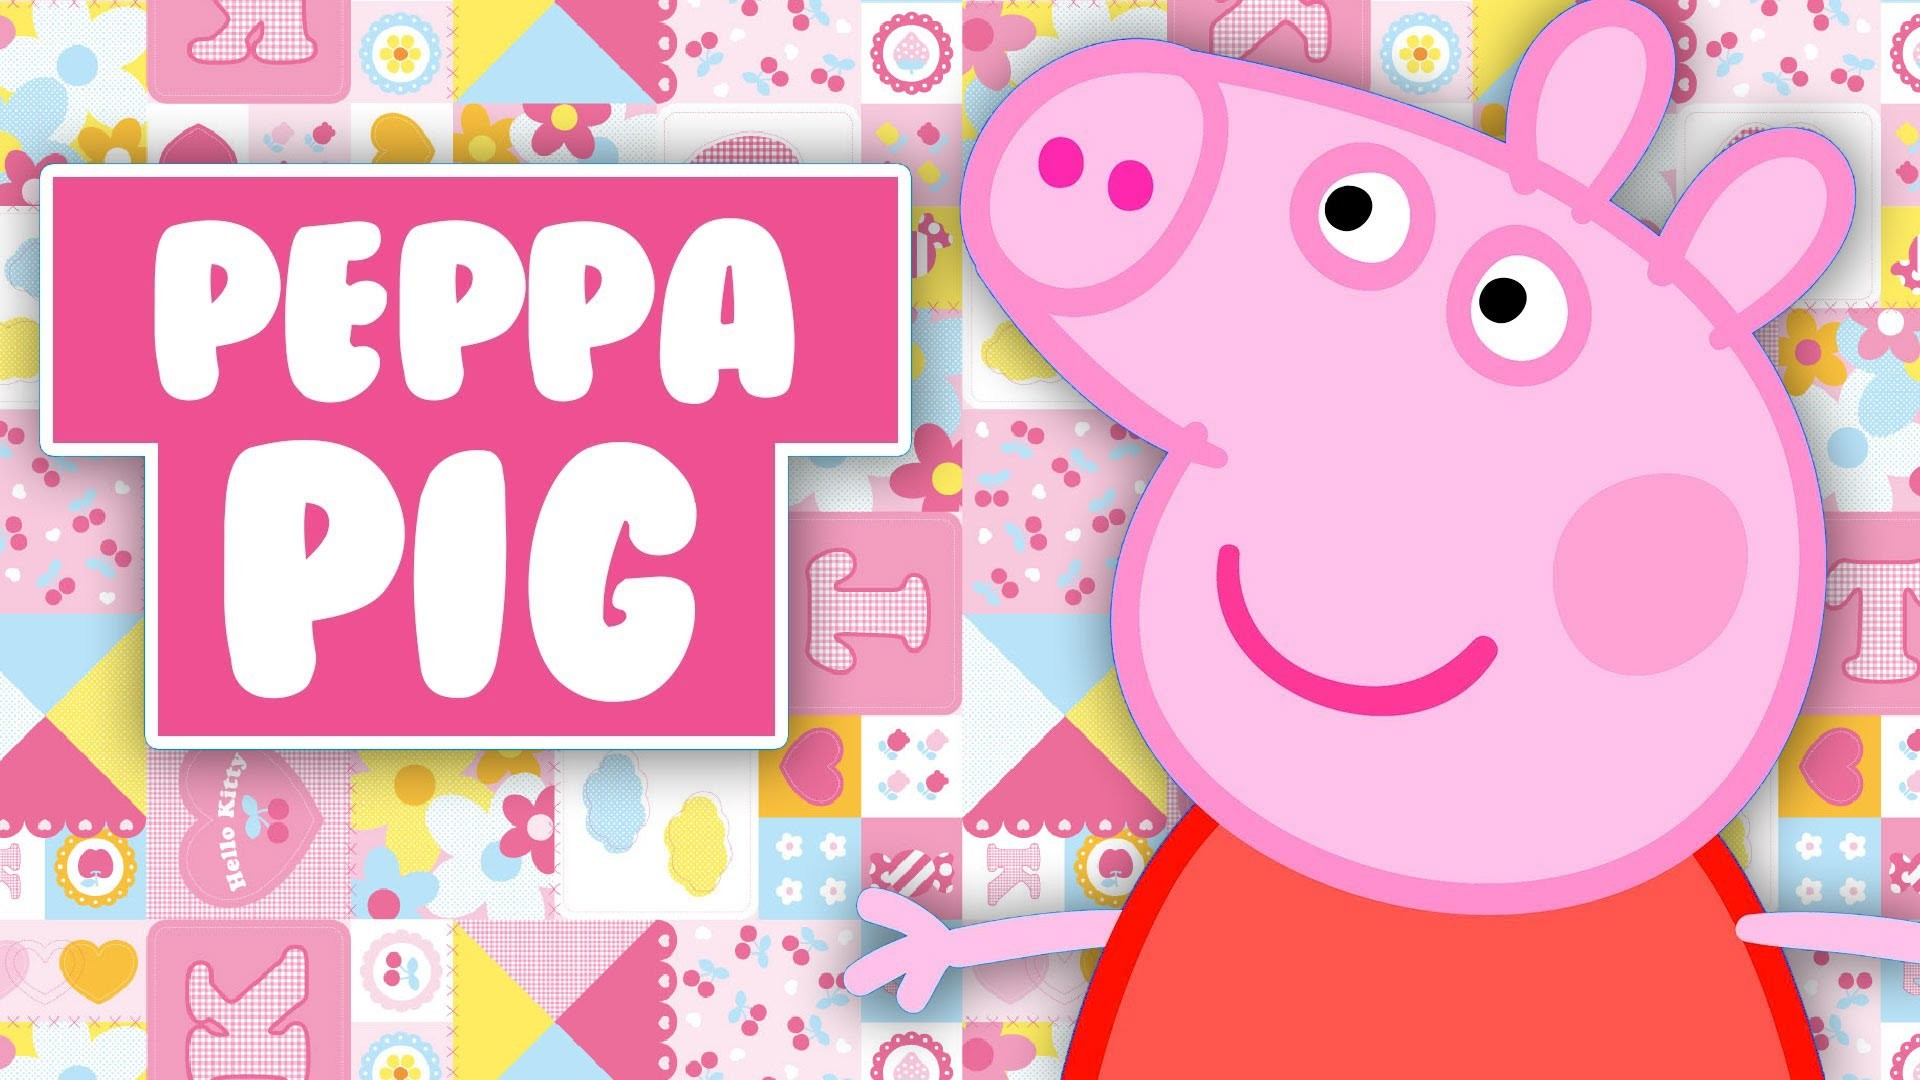 Jeux de peppa pig full movie - Peppa pig telecharger ...